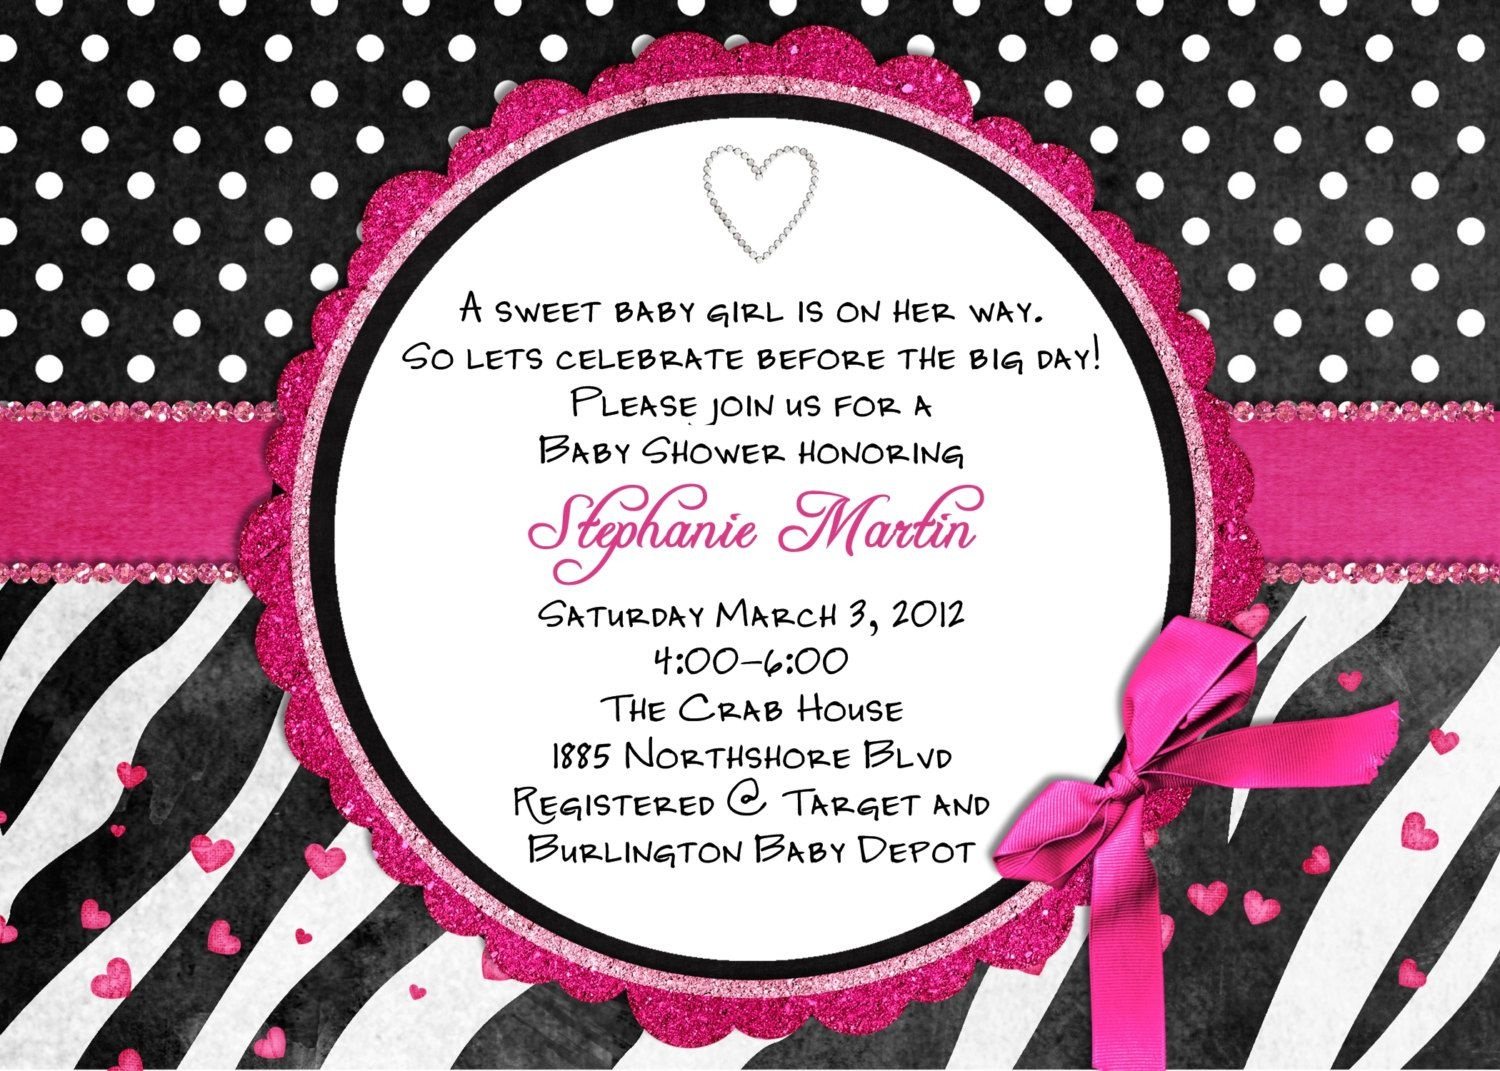 Free Printable Hot Pink Zebra Invitations | Free Printable Zebra - Zebra Print Party Invitations Printable Free